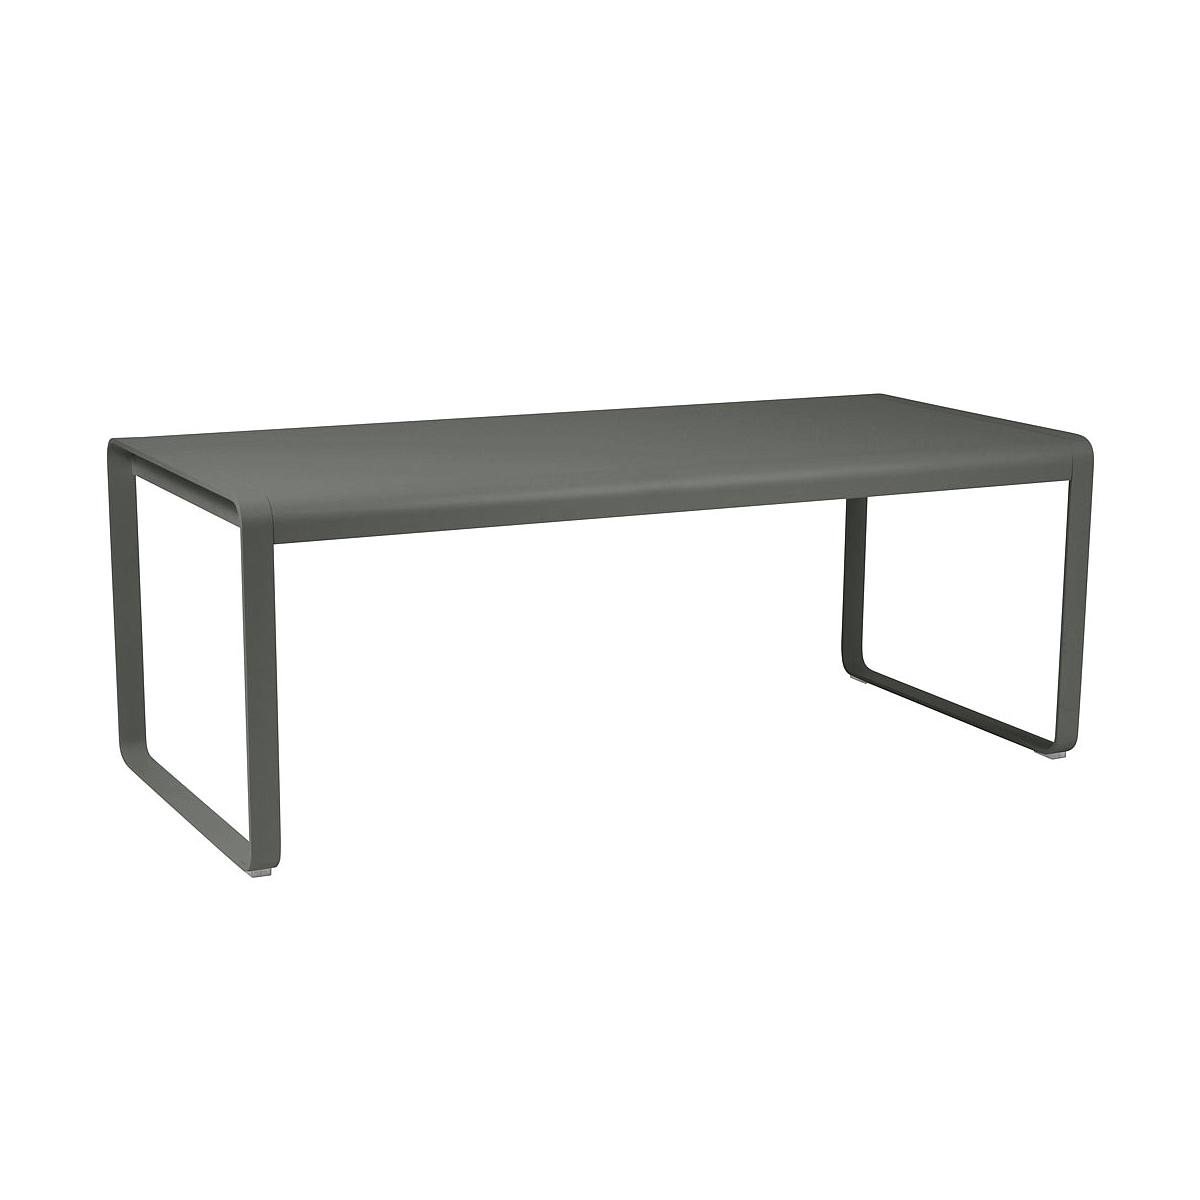 BELLEVIE by Fermob Table romarin